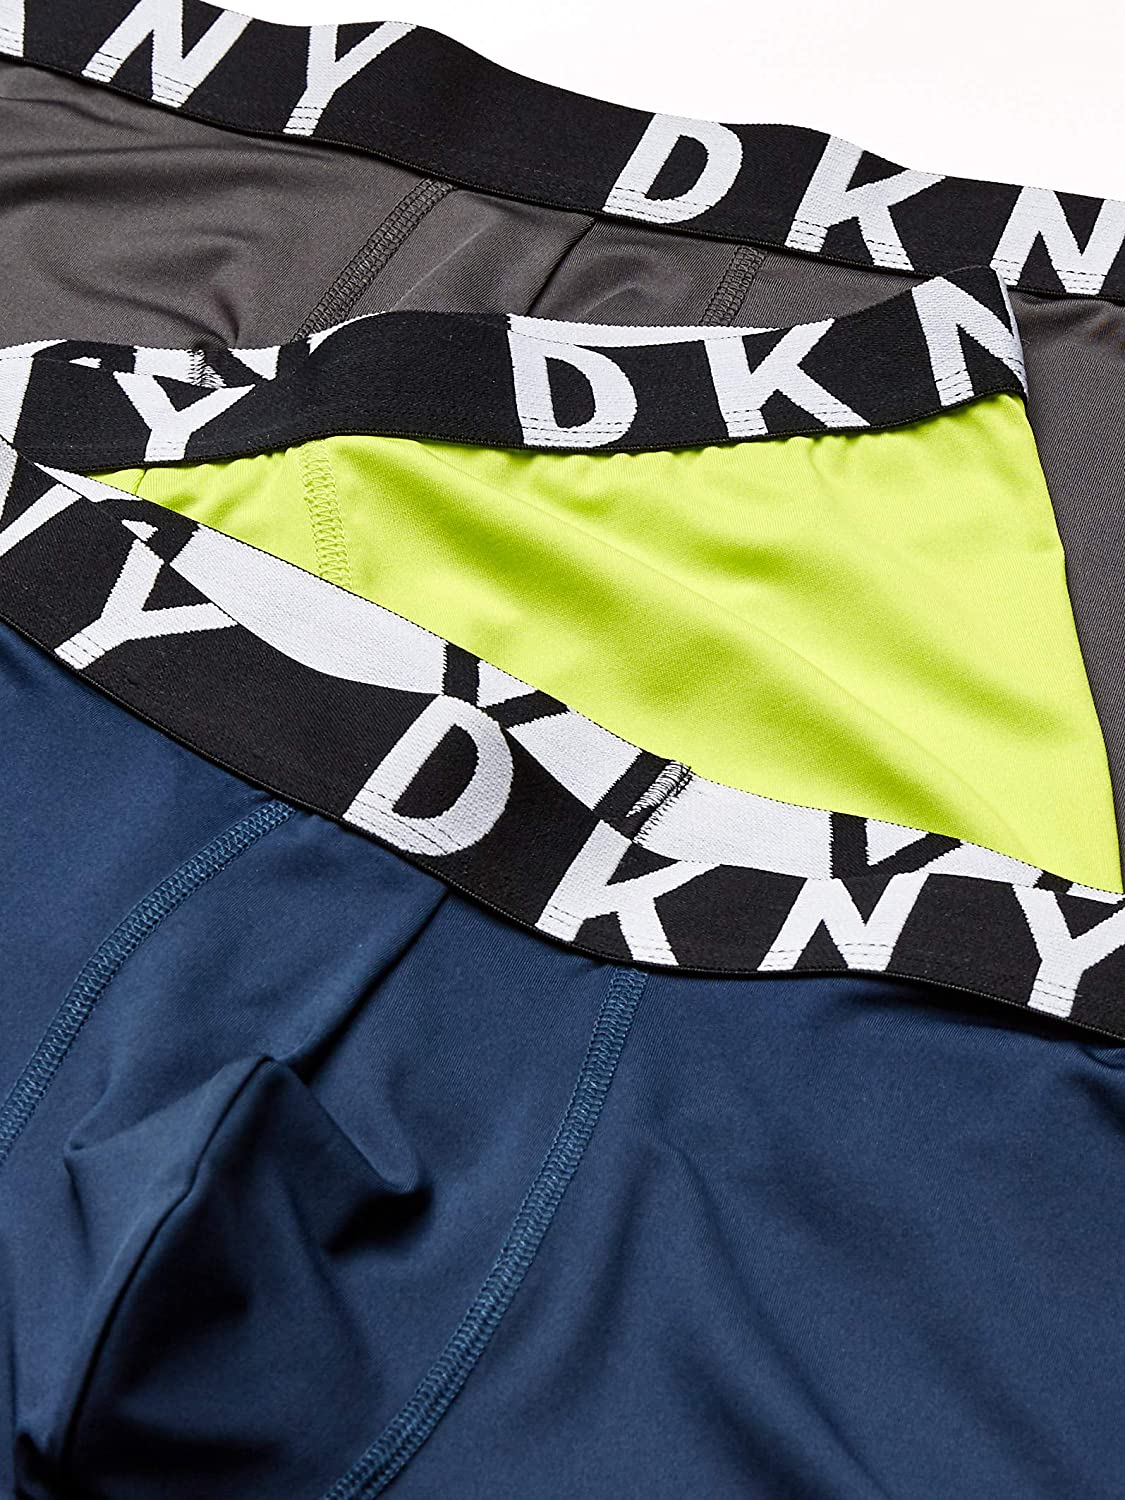 DKNY Men's Micro Stretch Trunk 3-Pack: Clothing